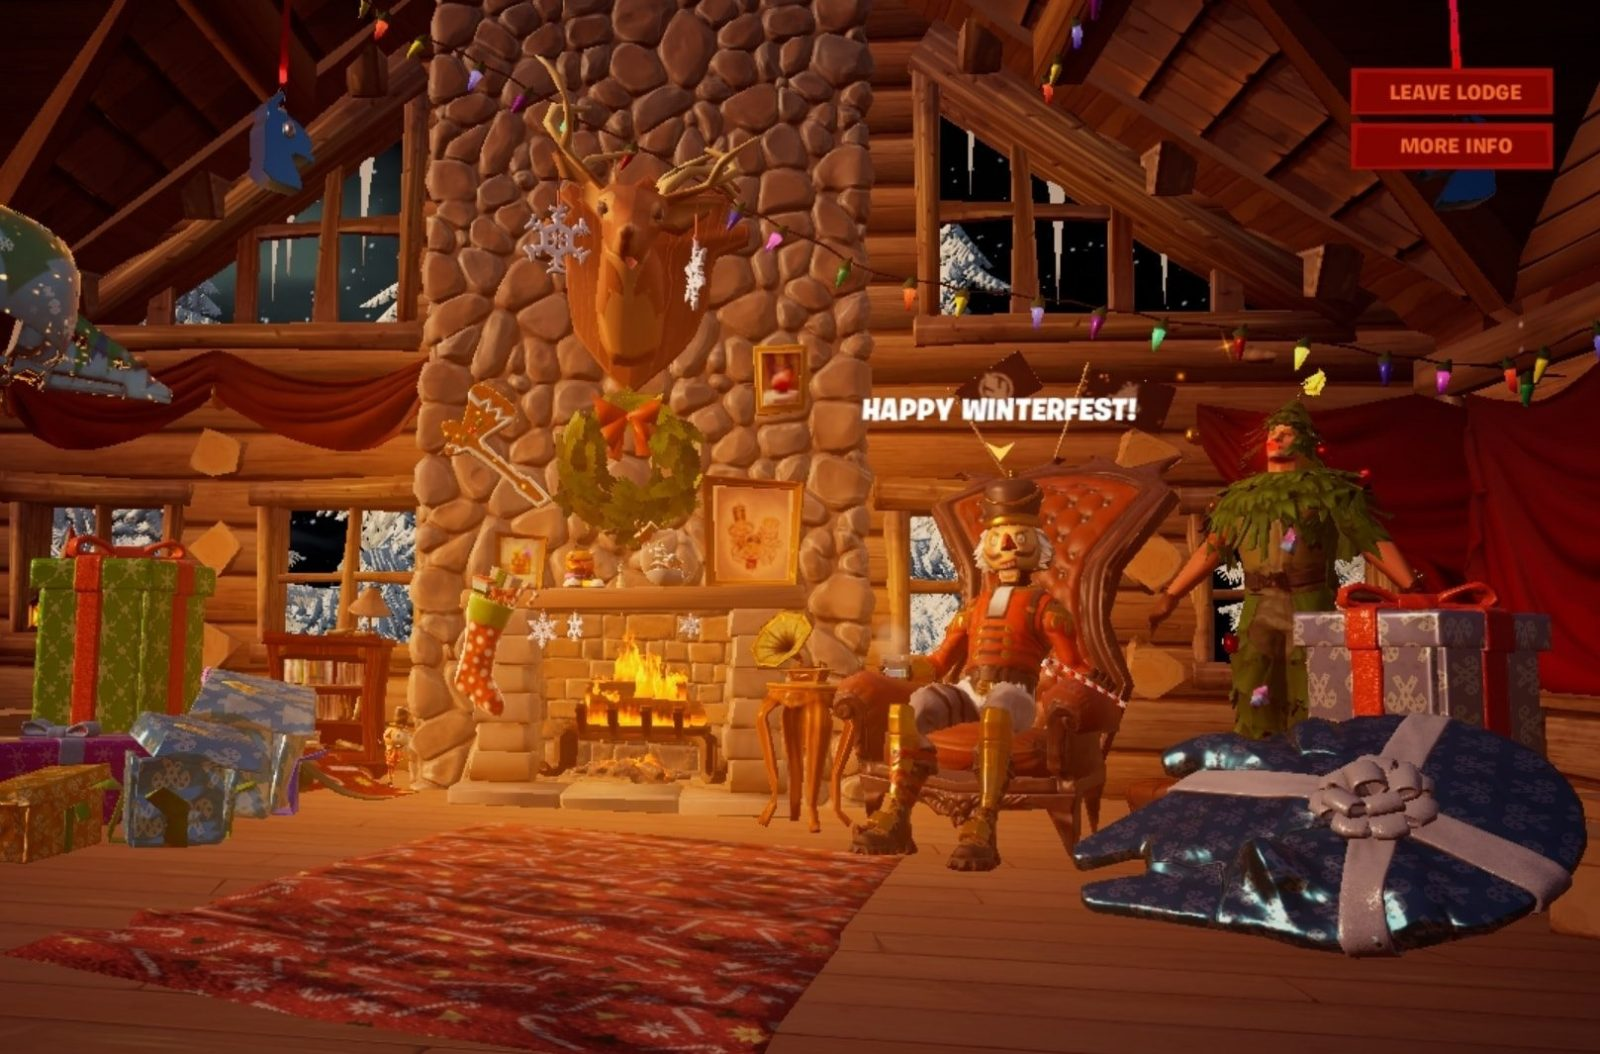 We can now receive one of two free Christmas skins from the lodge!